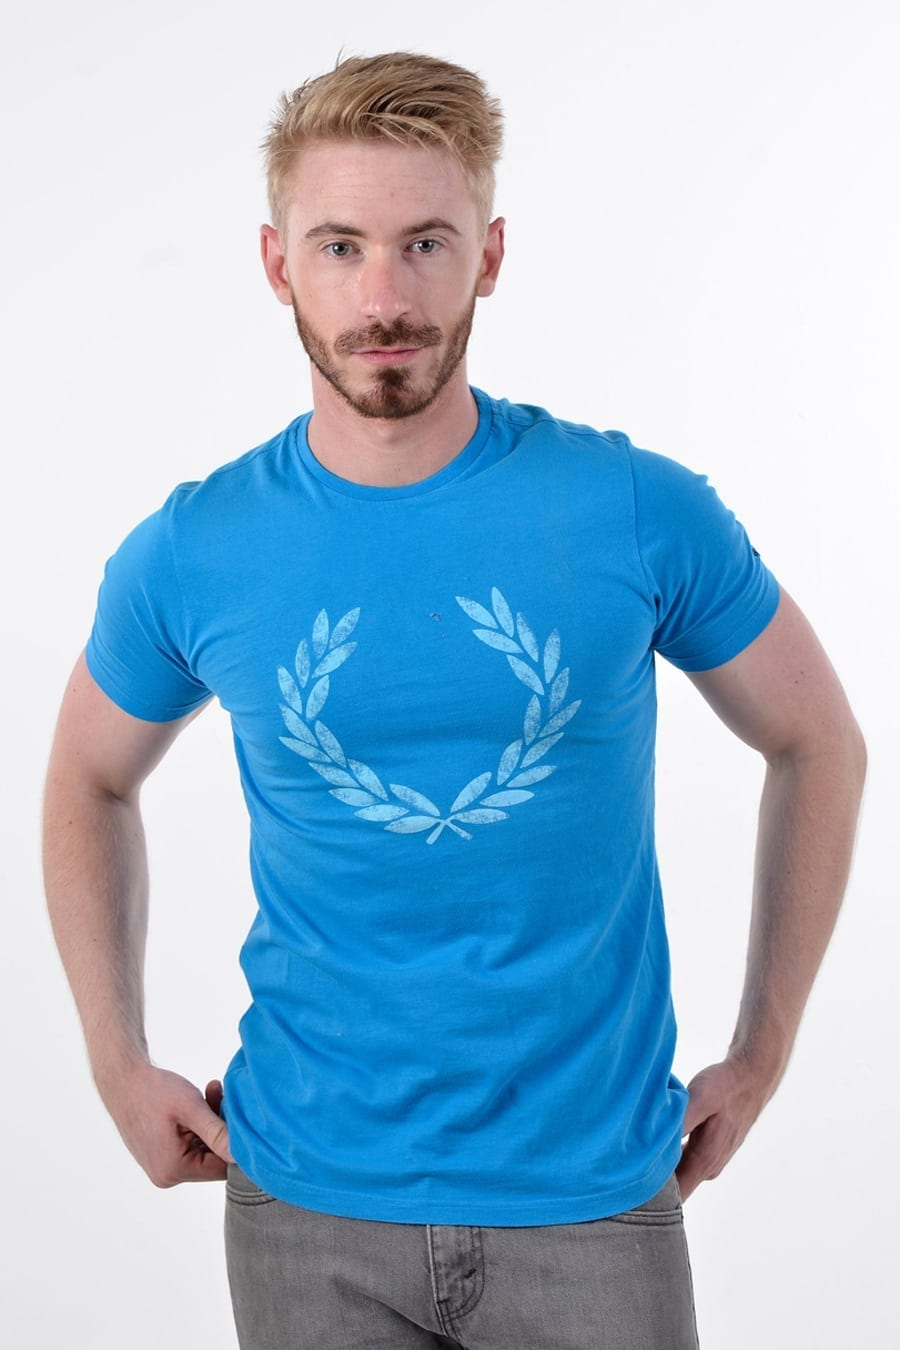 Vintage Fred Perry blue t shirt